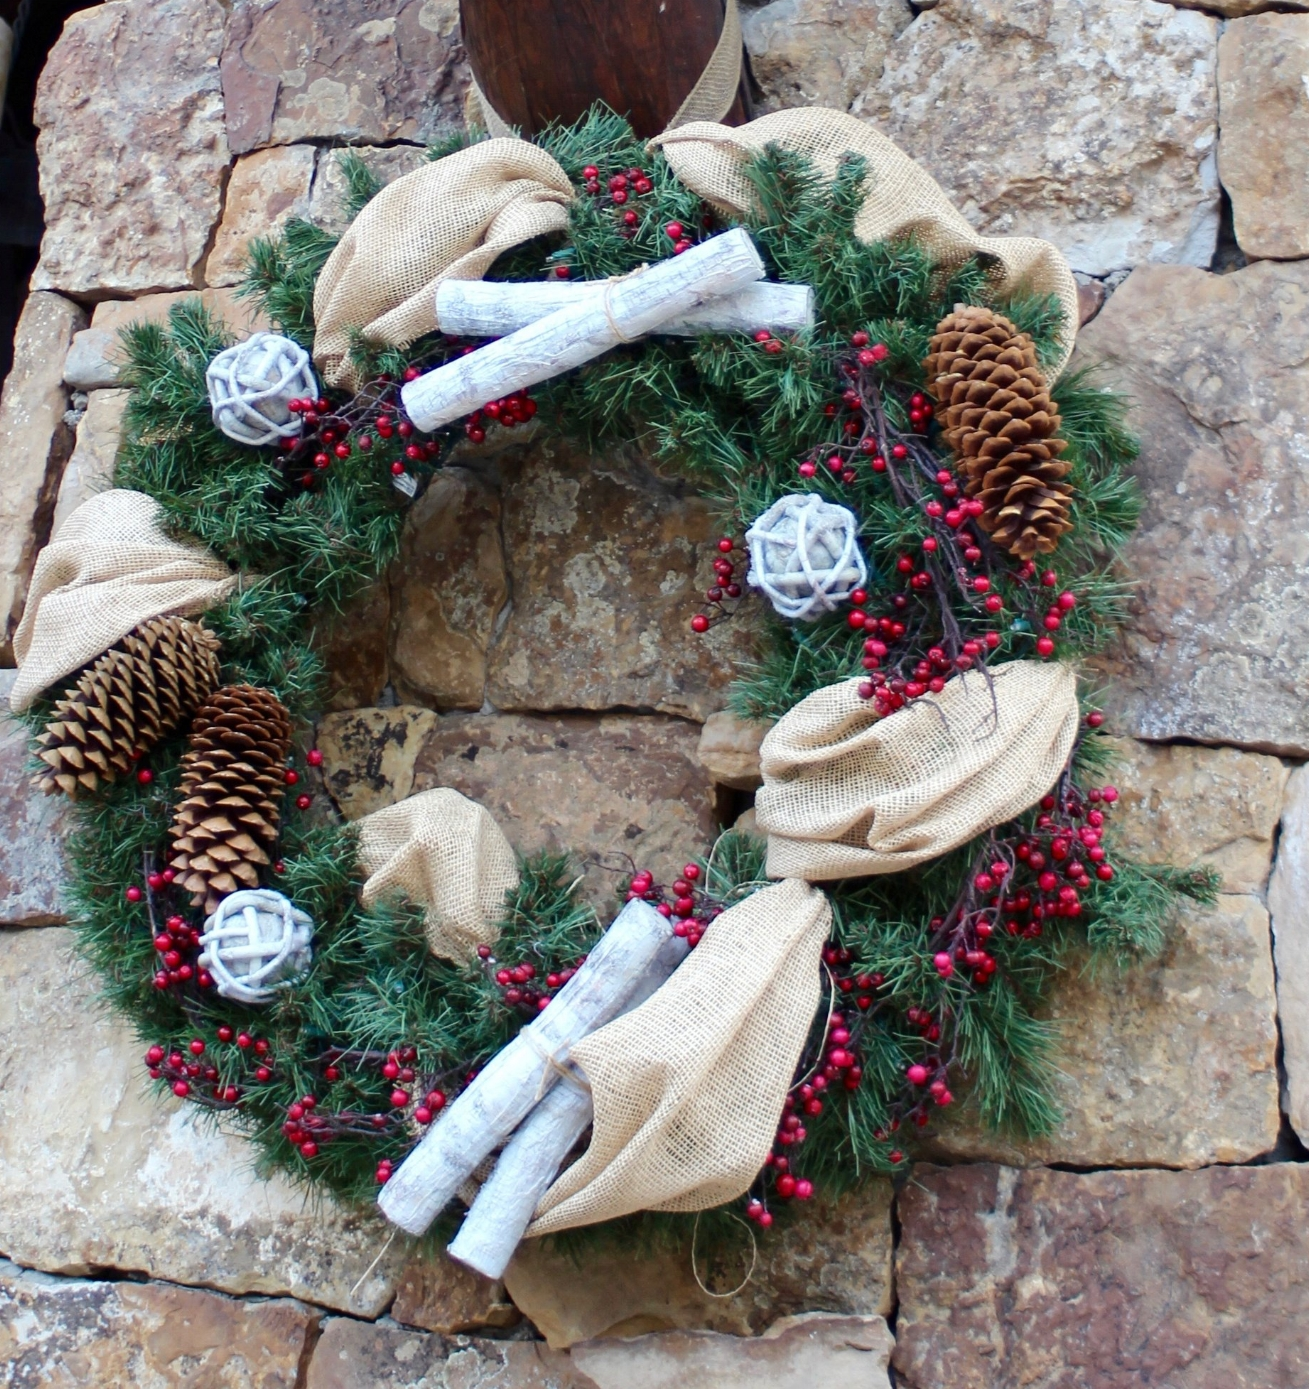 Give your holidays some PoP!Thanksgiving, Christmas, Hanukkah, Easter and summer vacation - we can provide everything from table arrangements, centerpieces and swags to garlands, wreaths, and fully decorated trees. -